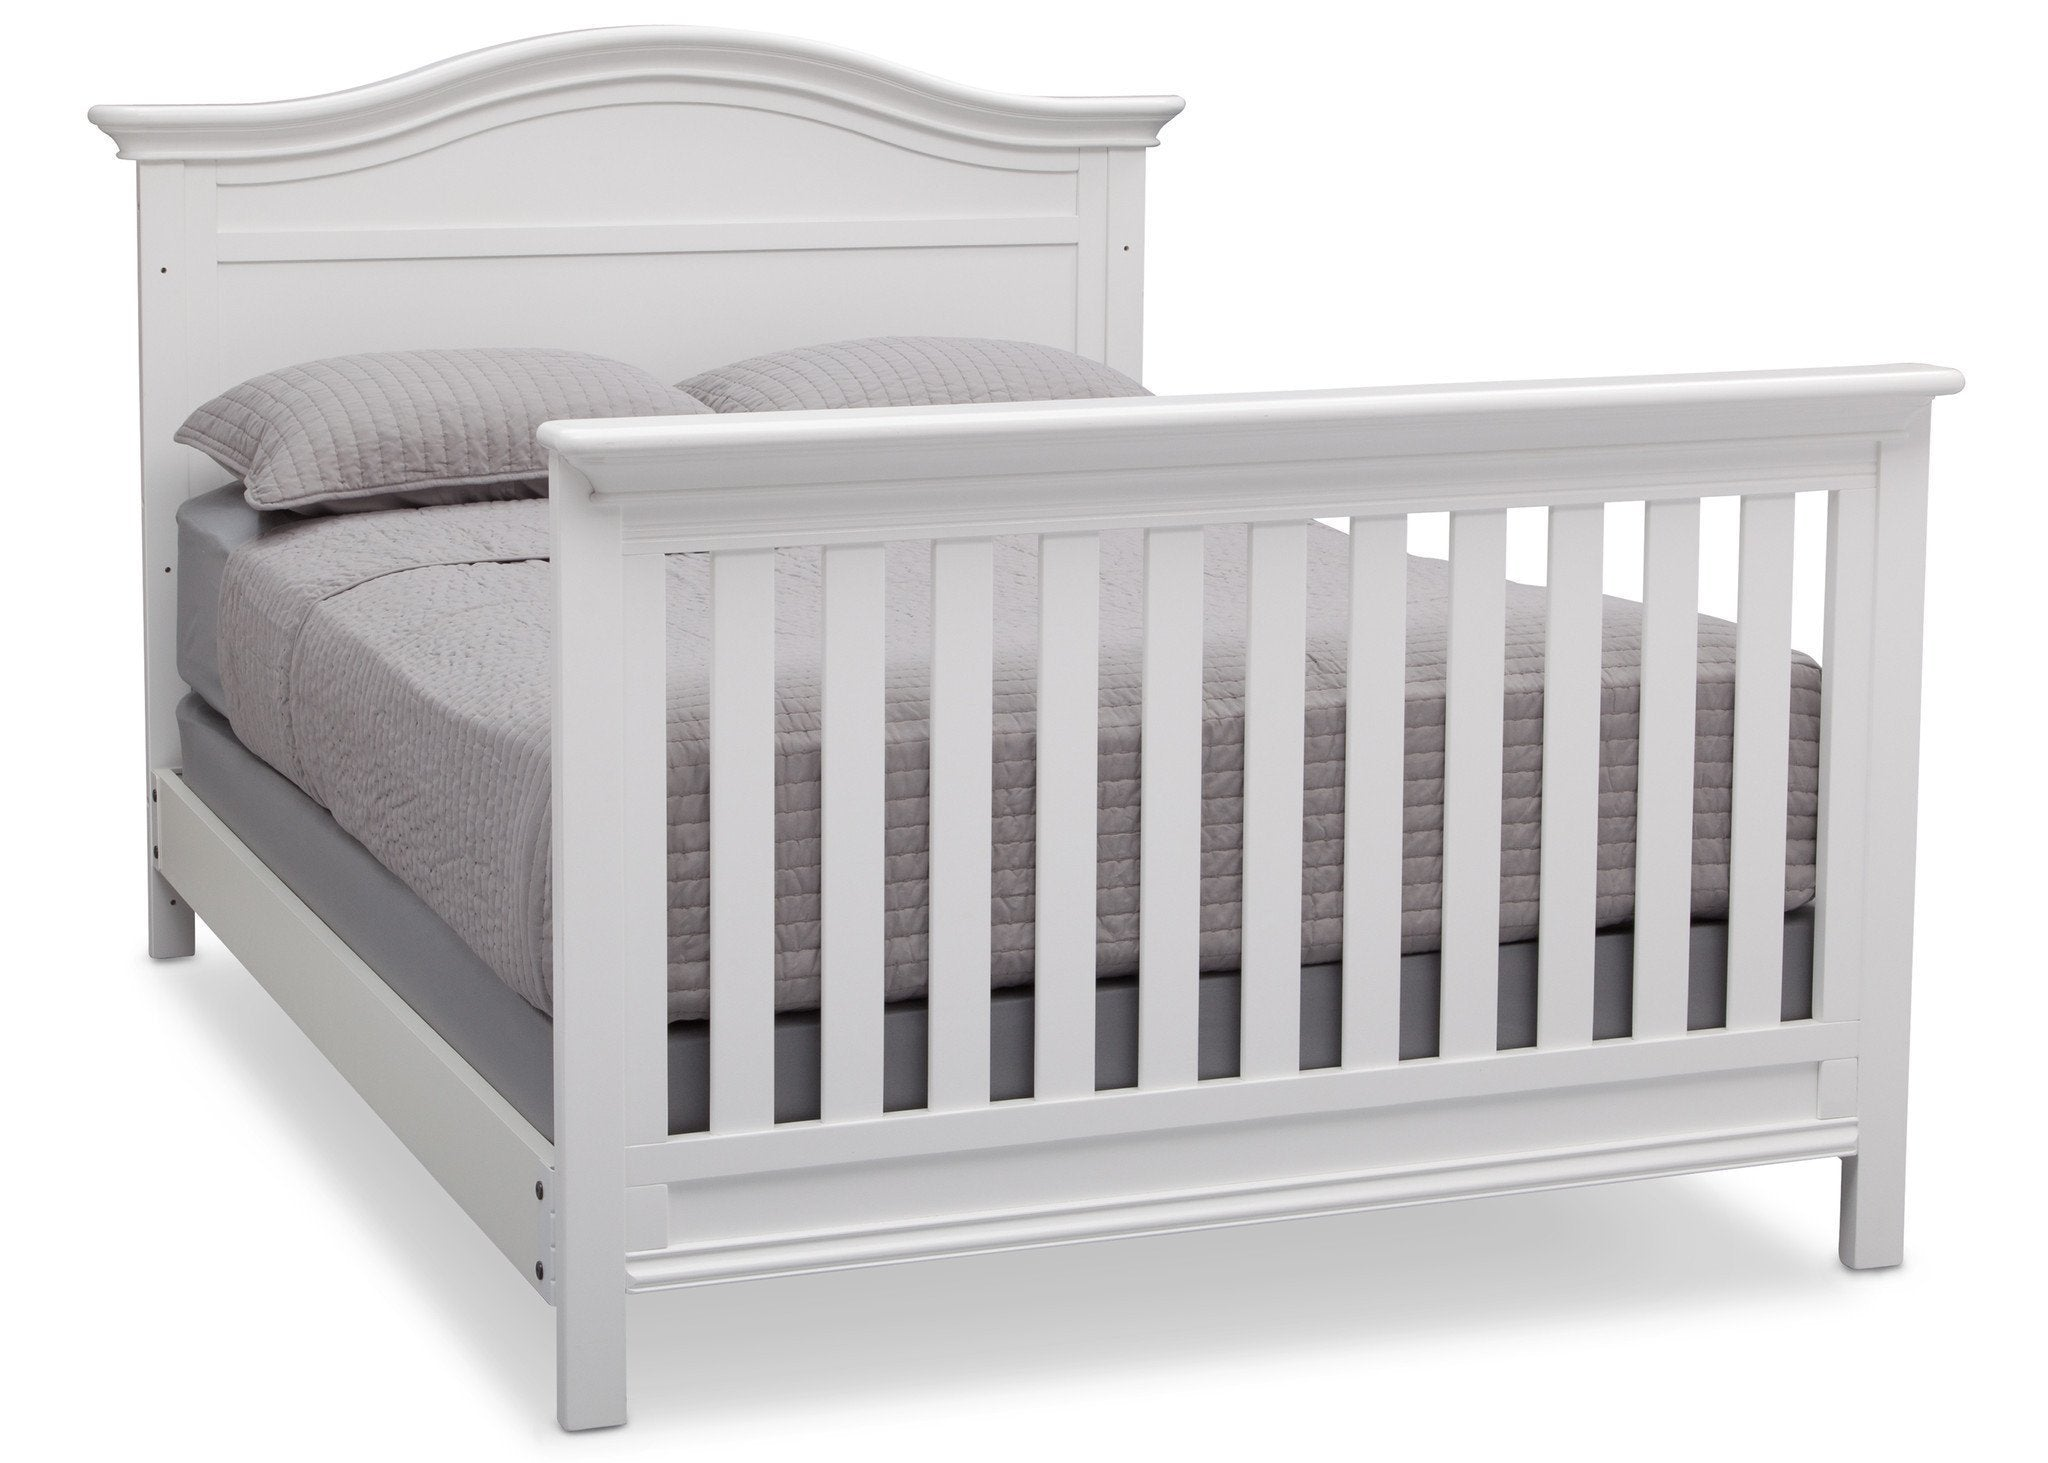 king mattress to size from bedtime crib protector clevabed clevamama